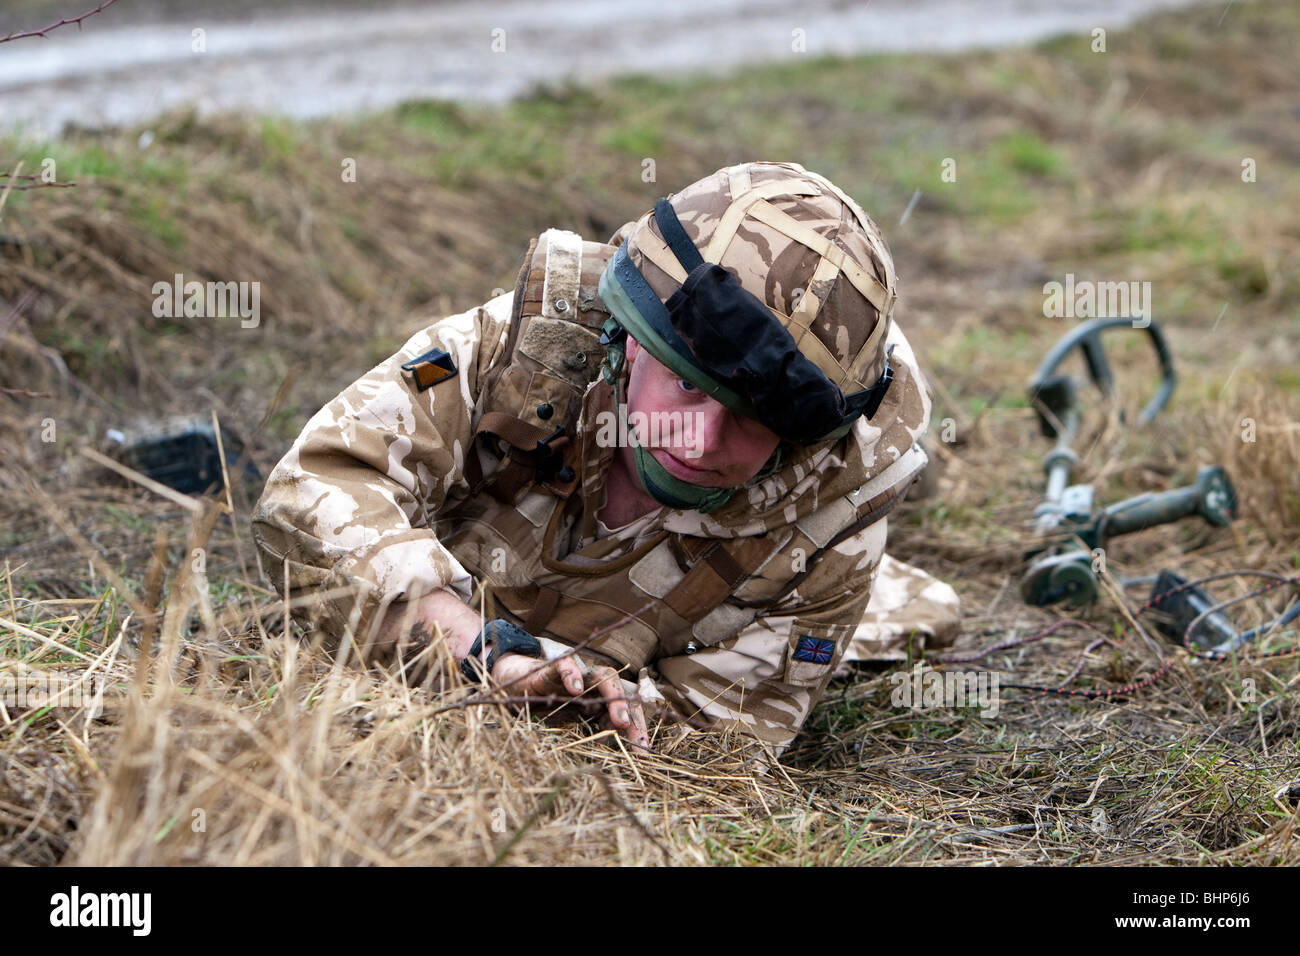 A british soldier uses a metal detector to locate an IED roadside bomb and prepares to destroy it during a training - Stock Image